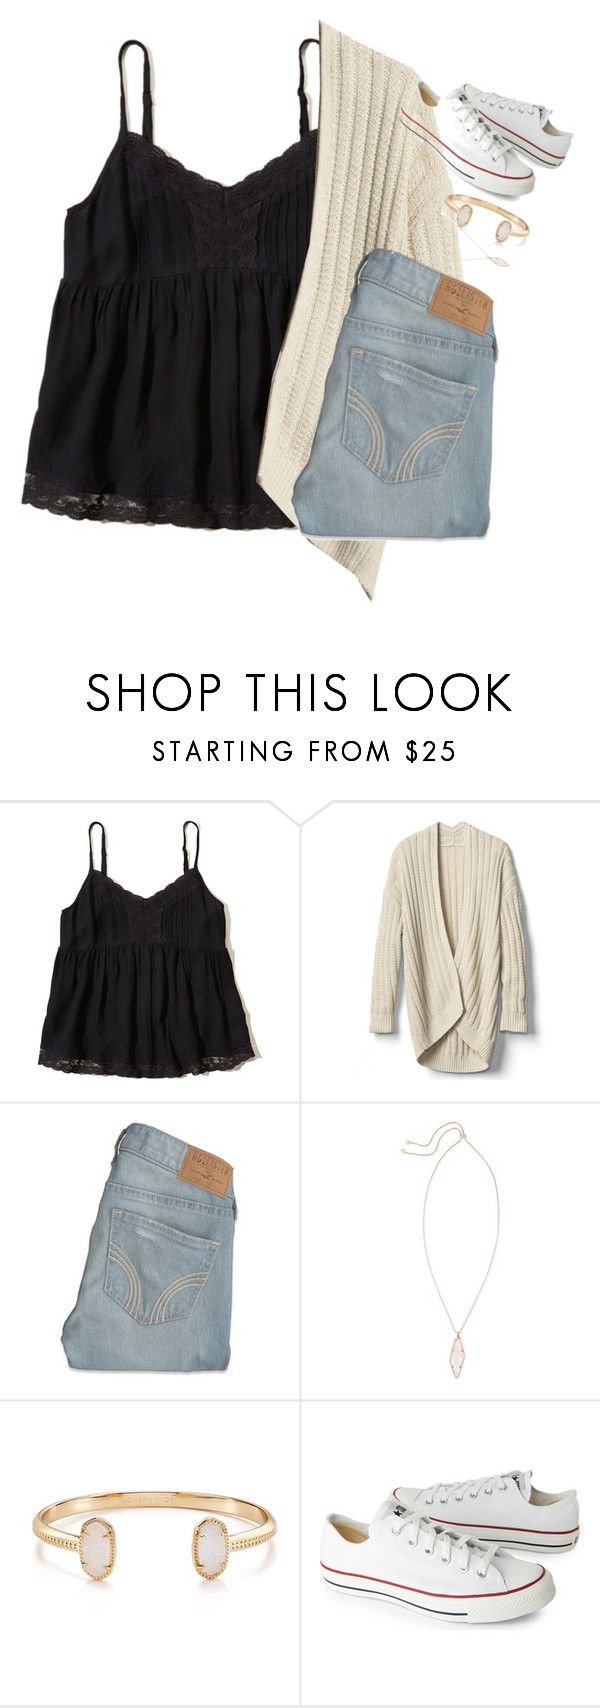 """Untitled #2401"" by laurenatria11 ❤ liked on Polyvore featuring Hollister Co., Gap, Kendra Scott and Converse"